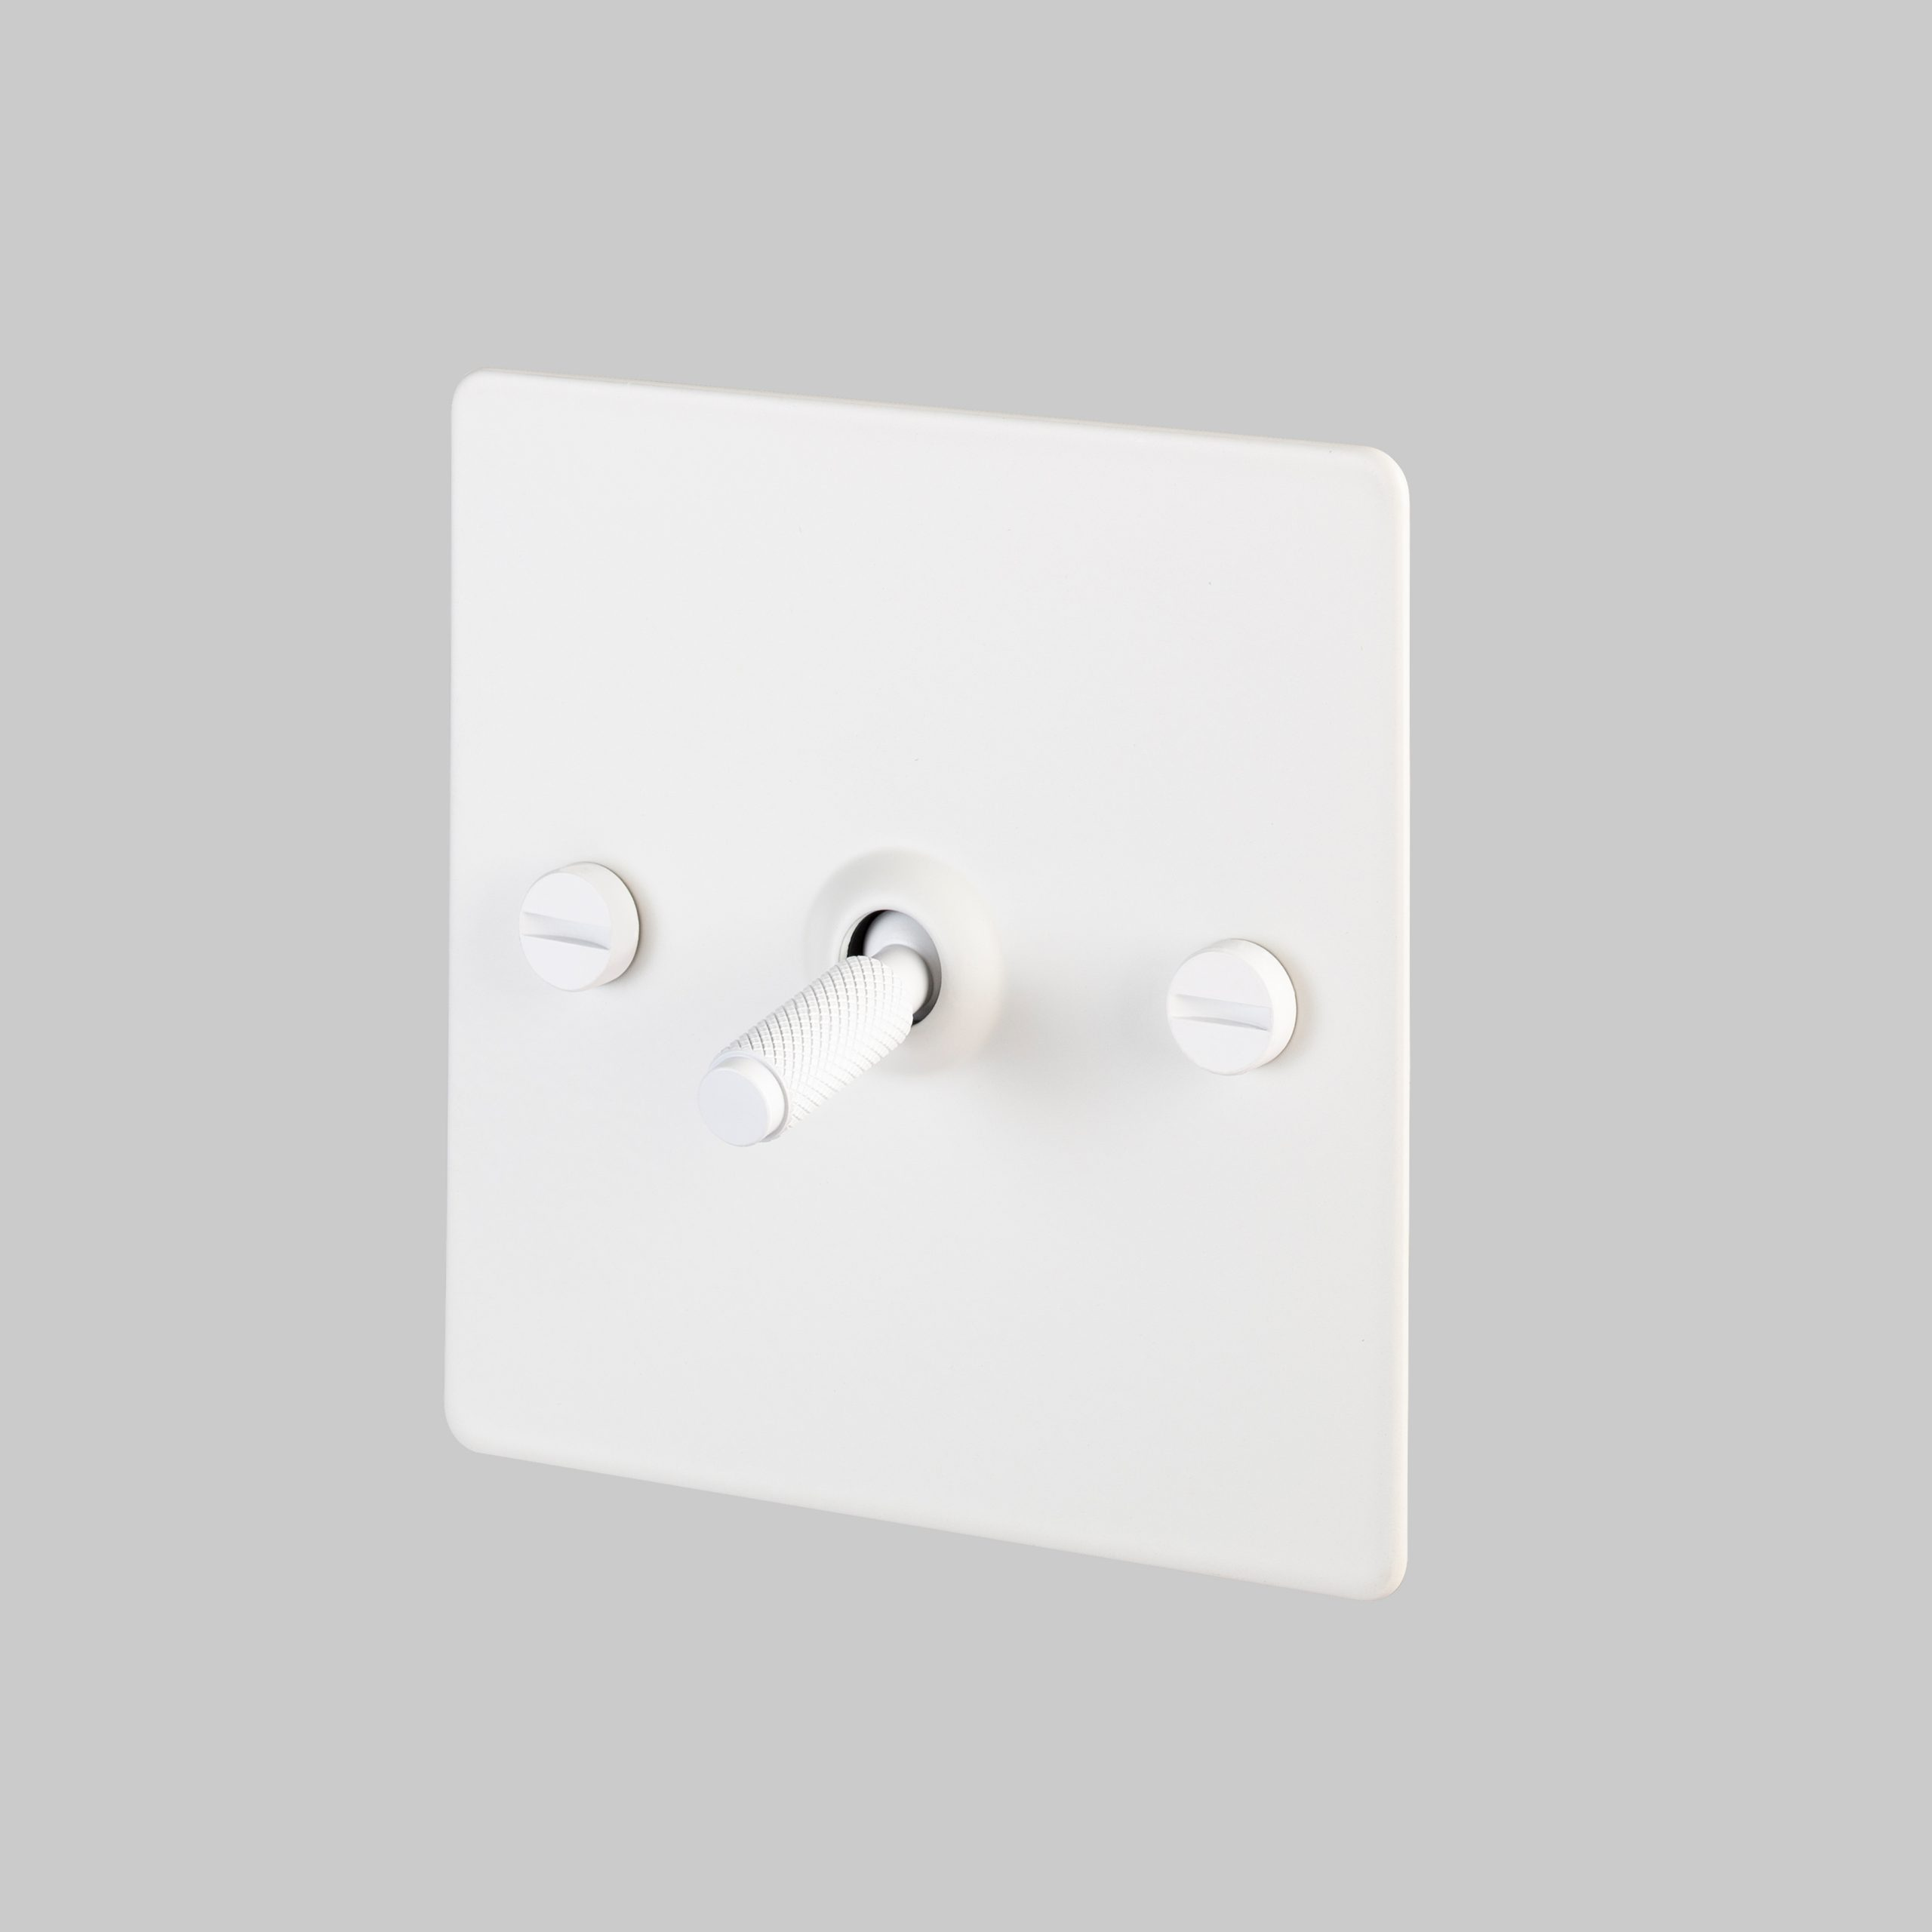 1g Intermediate Toggle Switch White Buster Punch